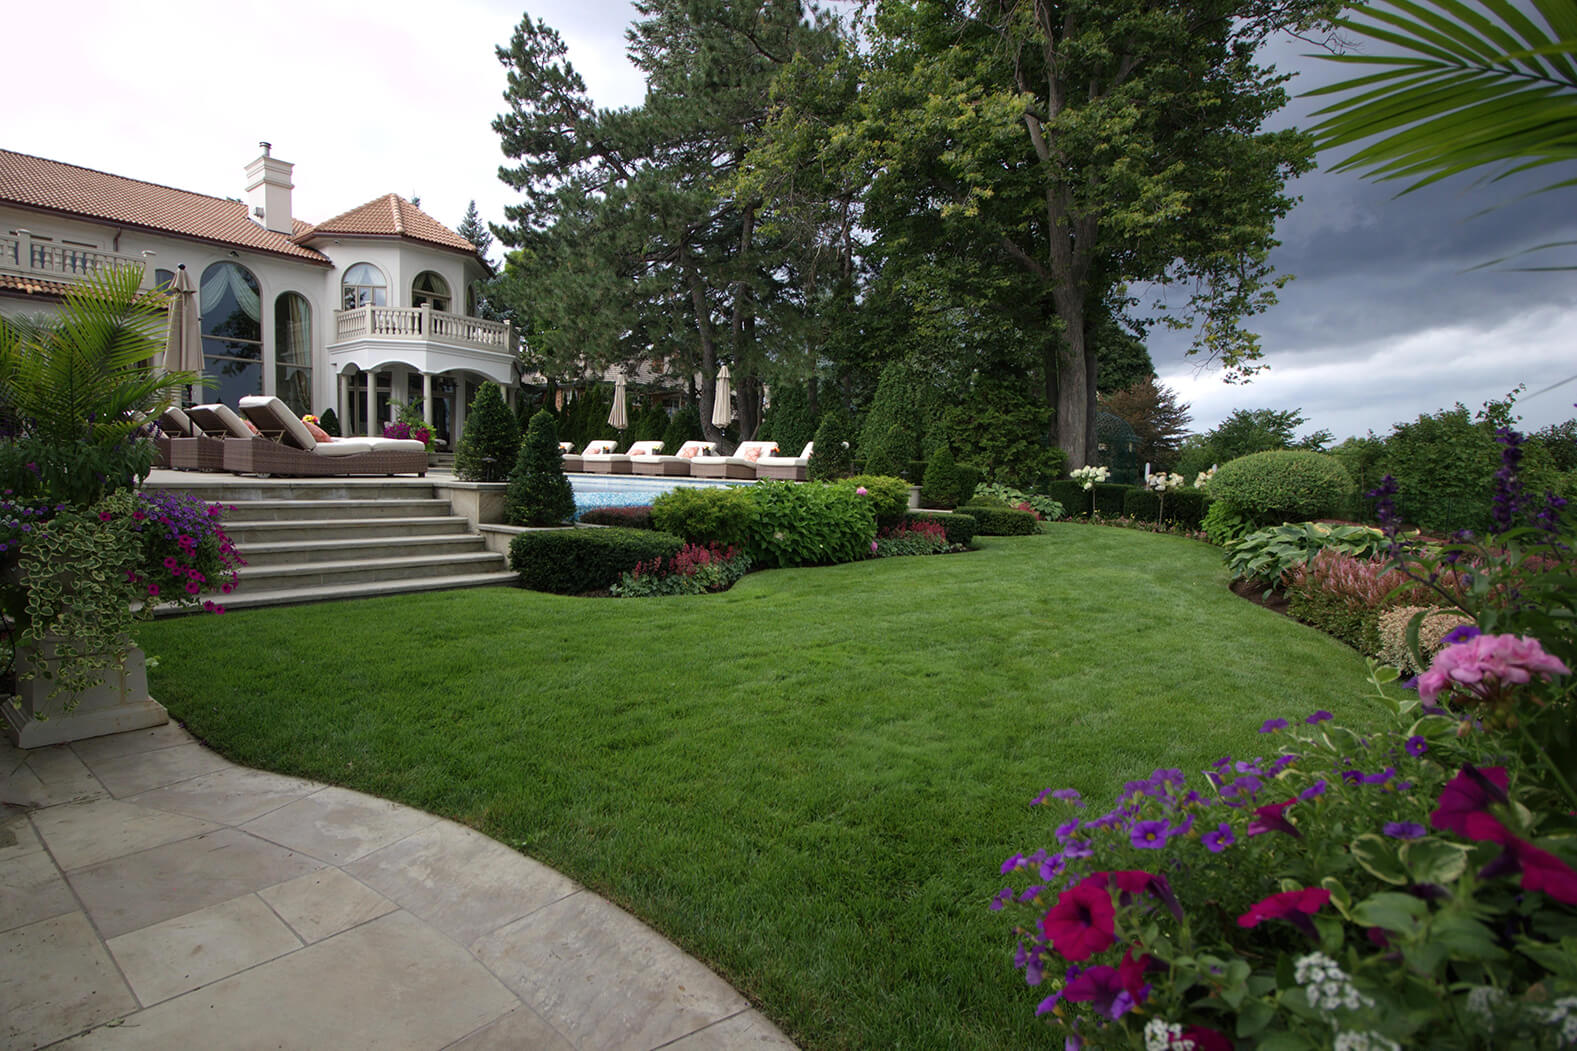 Shades of Summer Landscaping and Maintenance received the National Award of Landscape Excellence for Residential Maintenance.